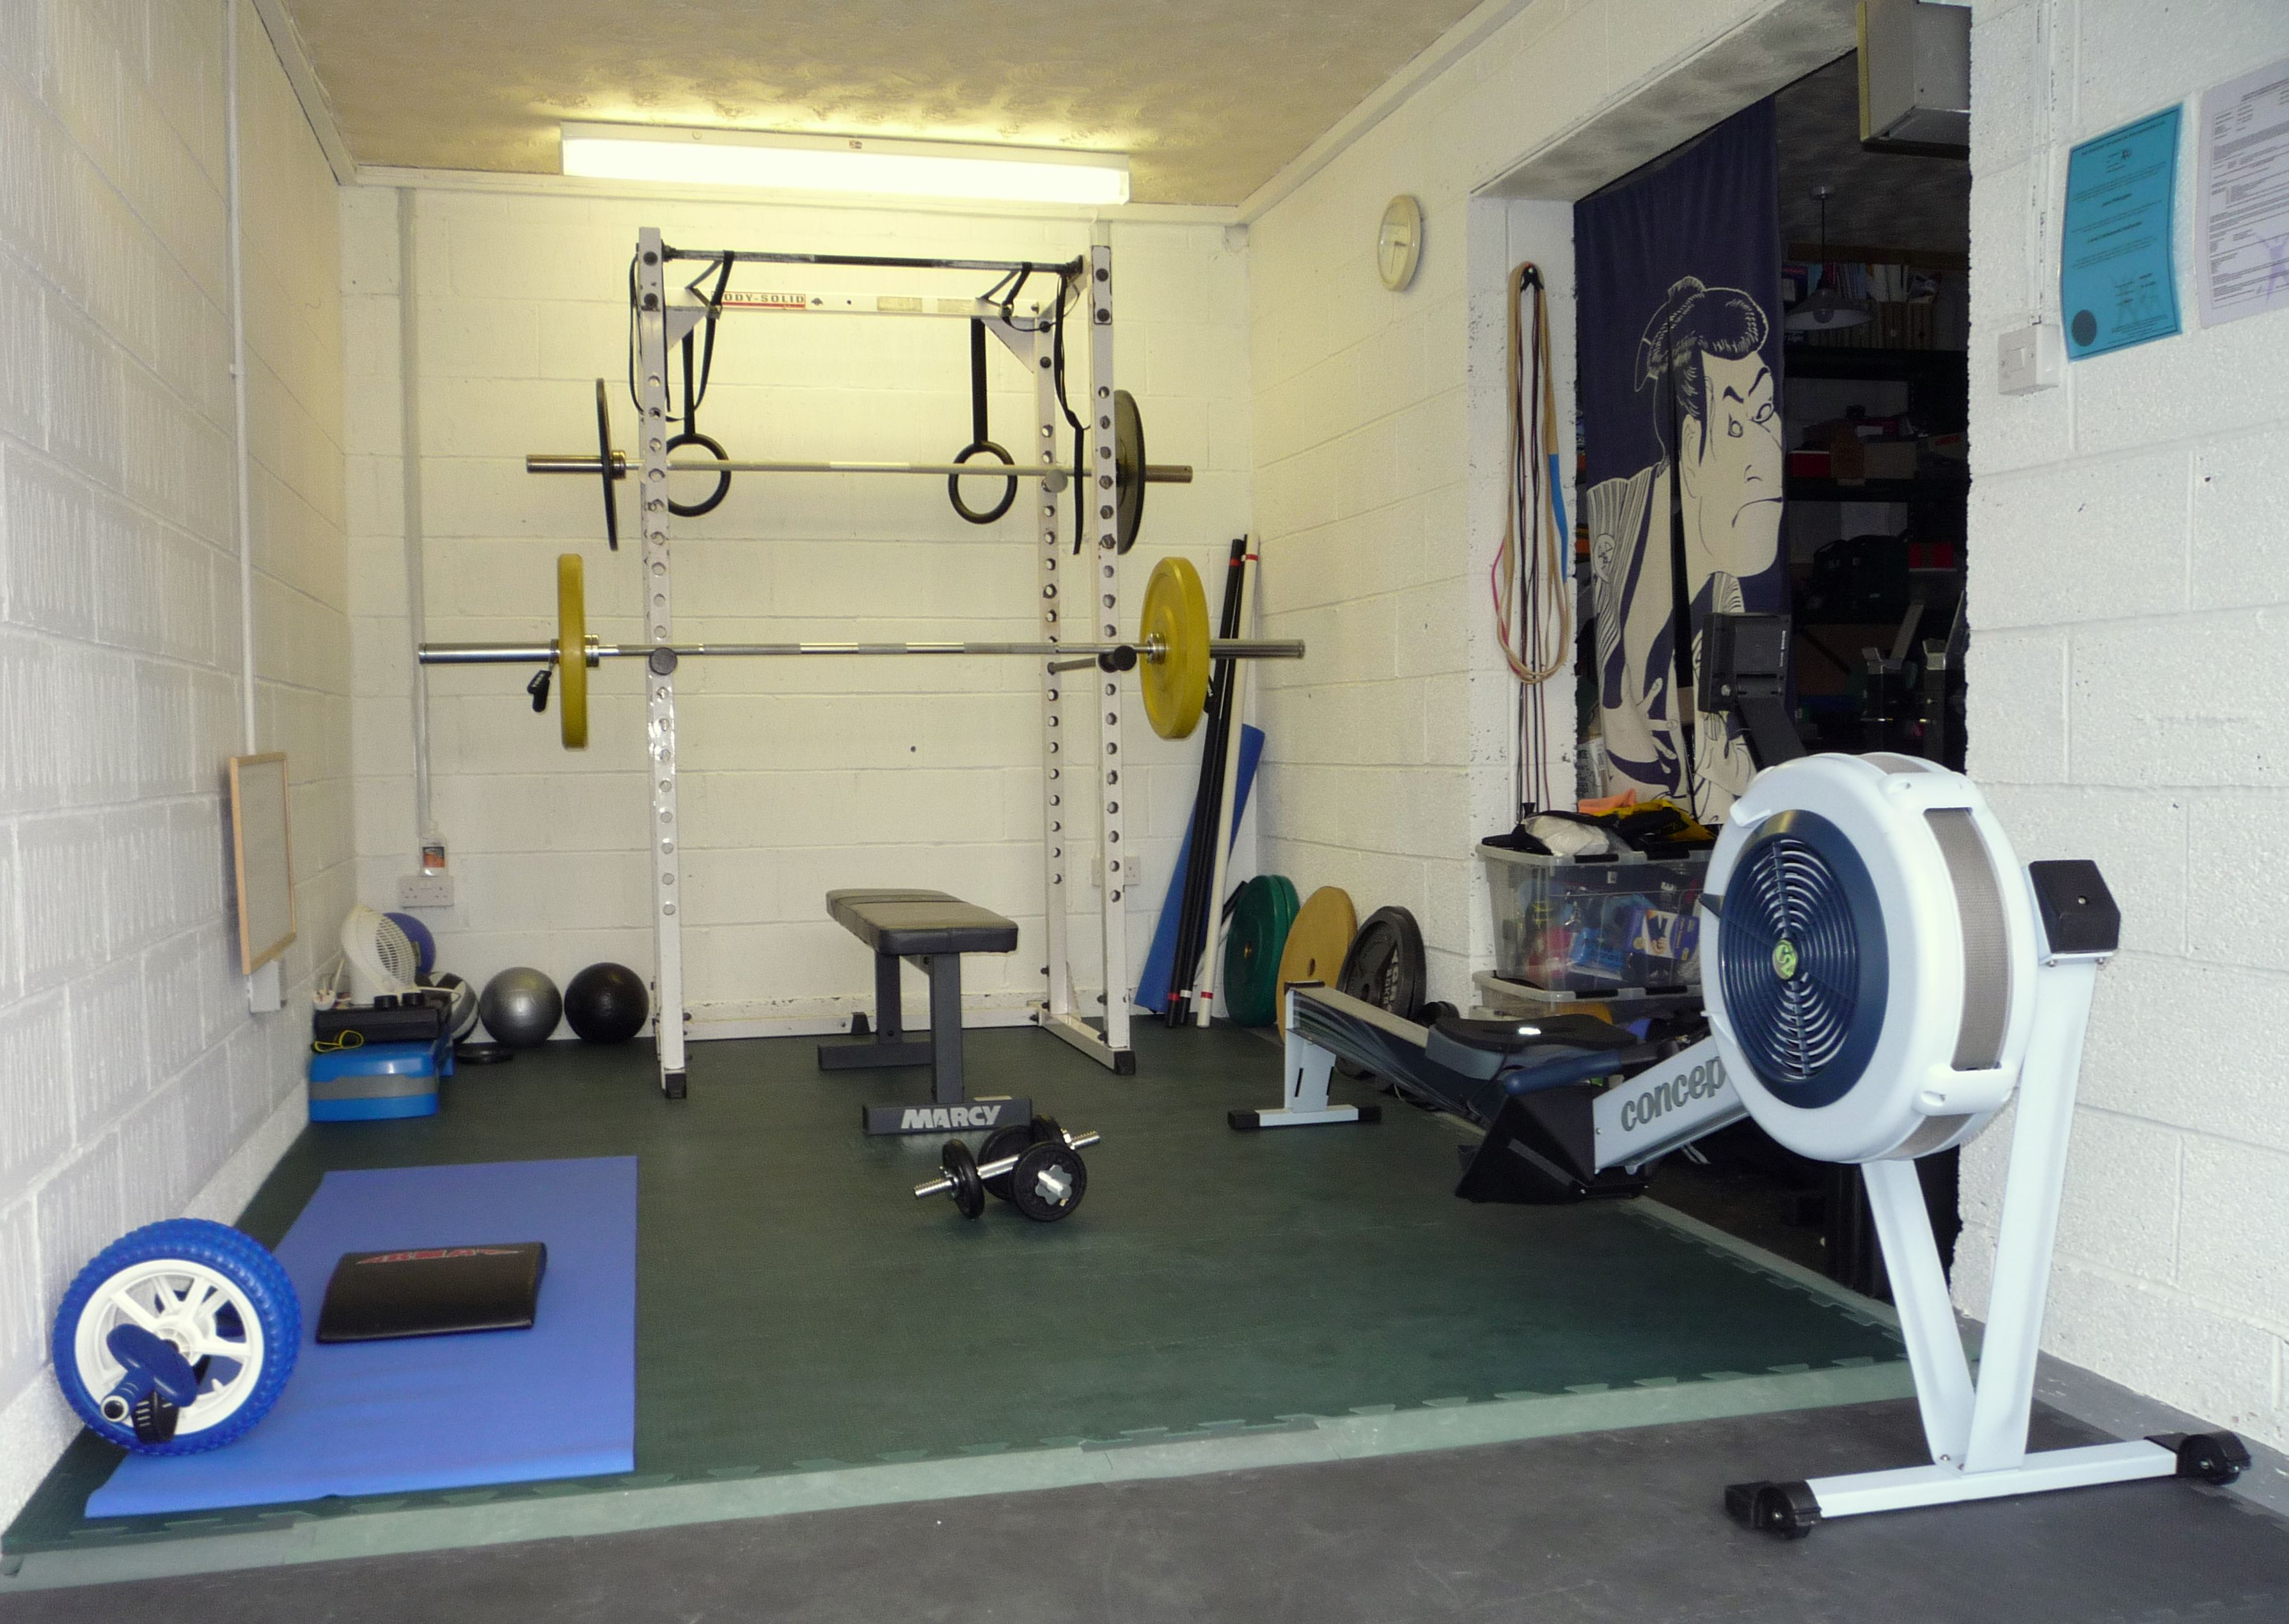 Garage gym with olympic weights and c rower